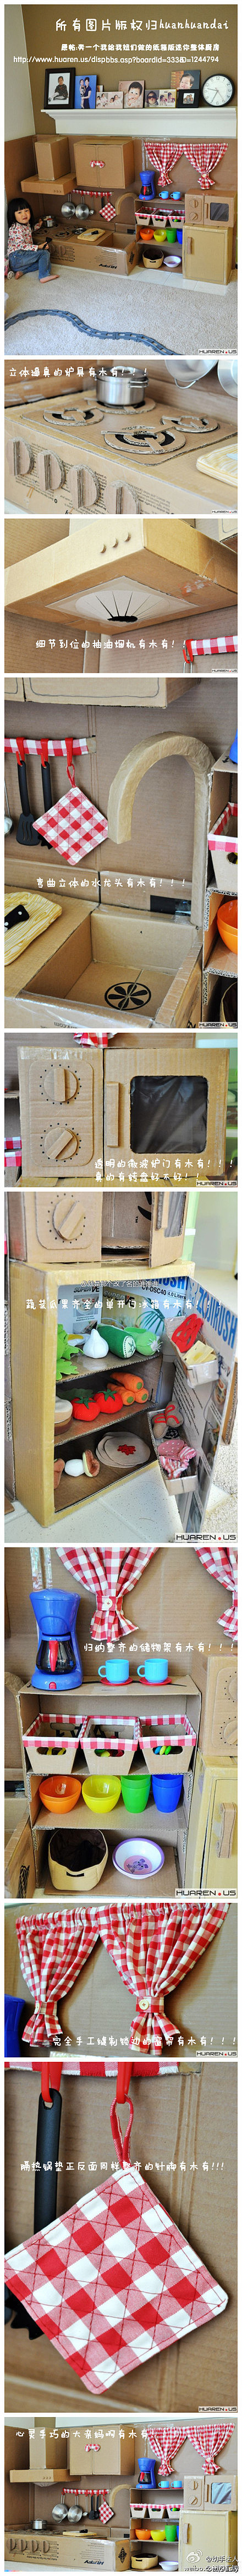 amazing kids kitchen made from cardboard